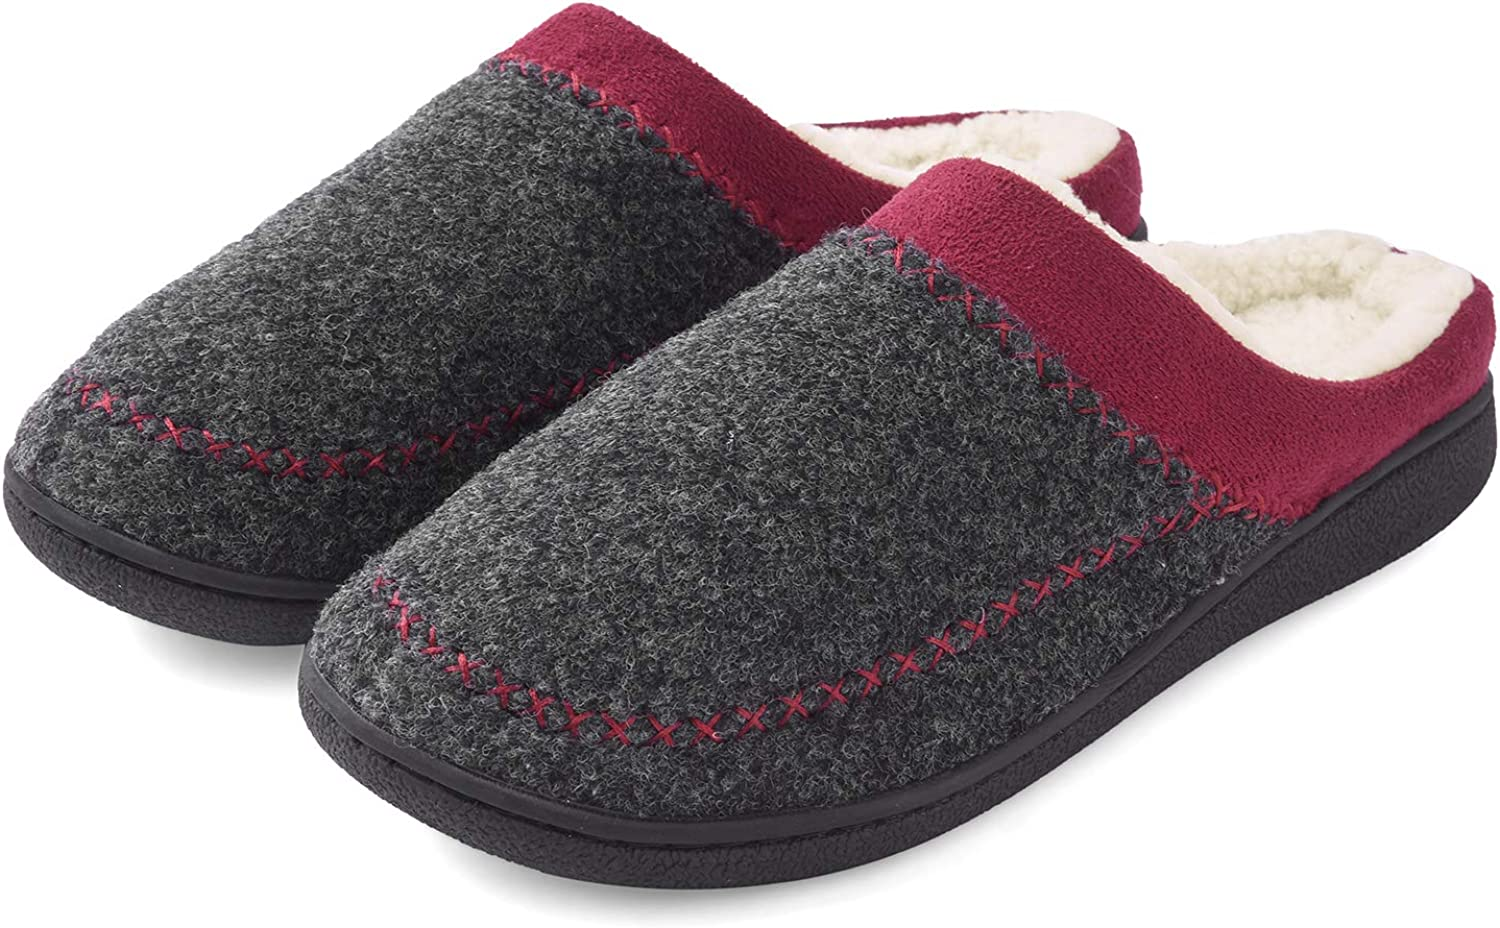 Maya Karis Purse Women's Cozy Comfort Memory Foam Slippers, Soft Warm Slip On House Slippers shoes Clog w Indoor Outdoor Anti-Skid Rubber Sole